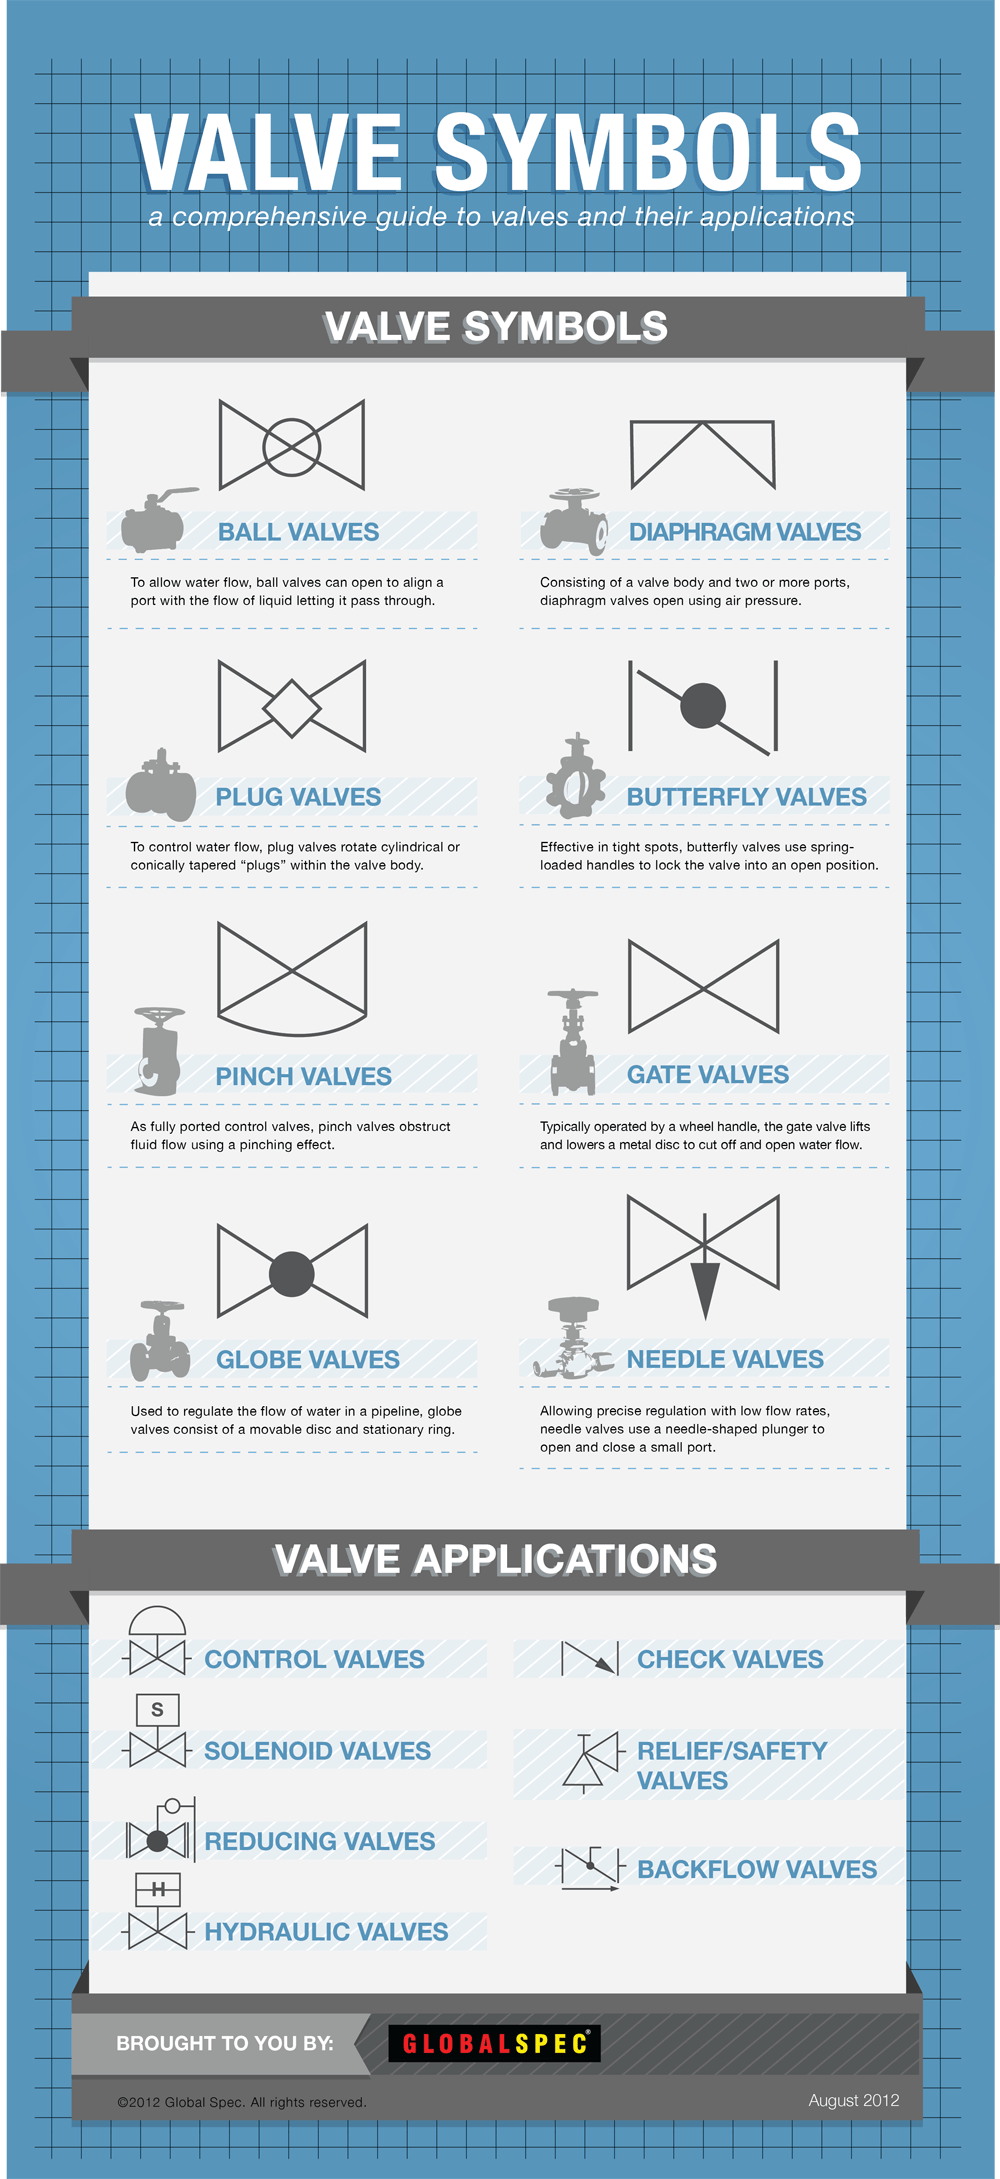 medium resolution of just as various organizations have sought to standardize valves symbols are used to help identify and educate those who use and purchase valves on what